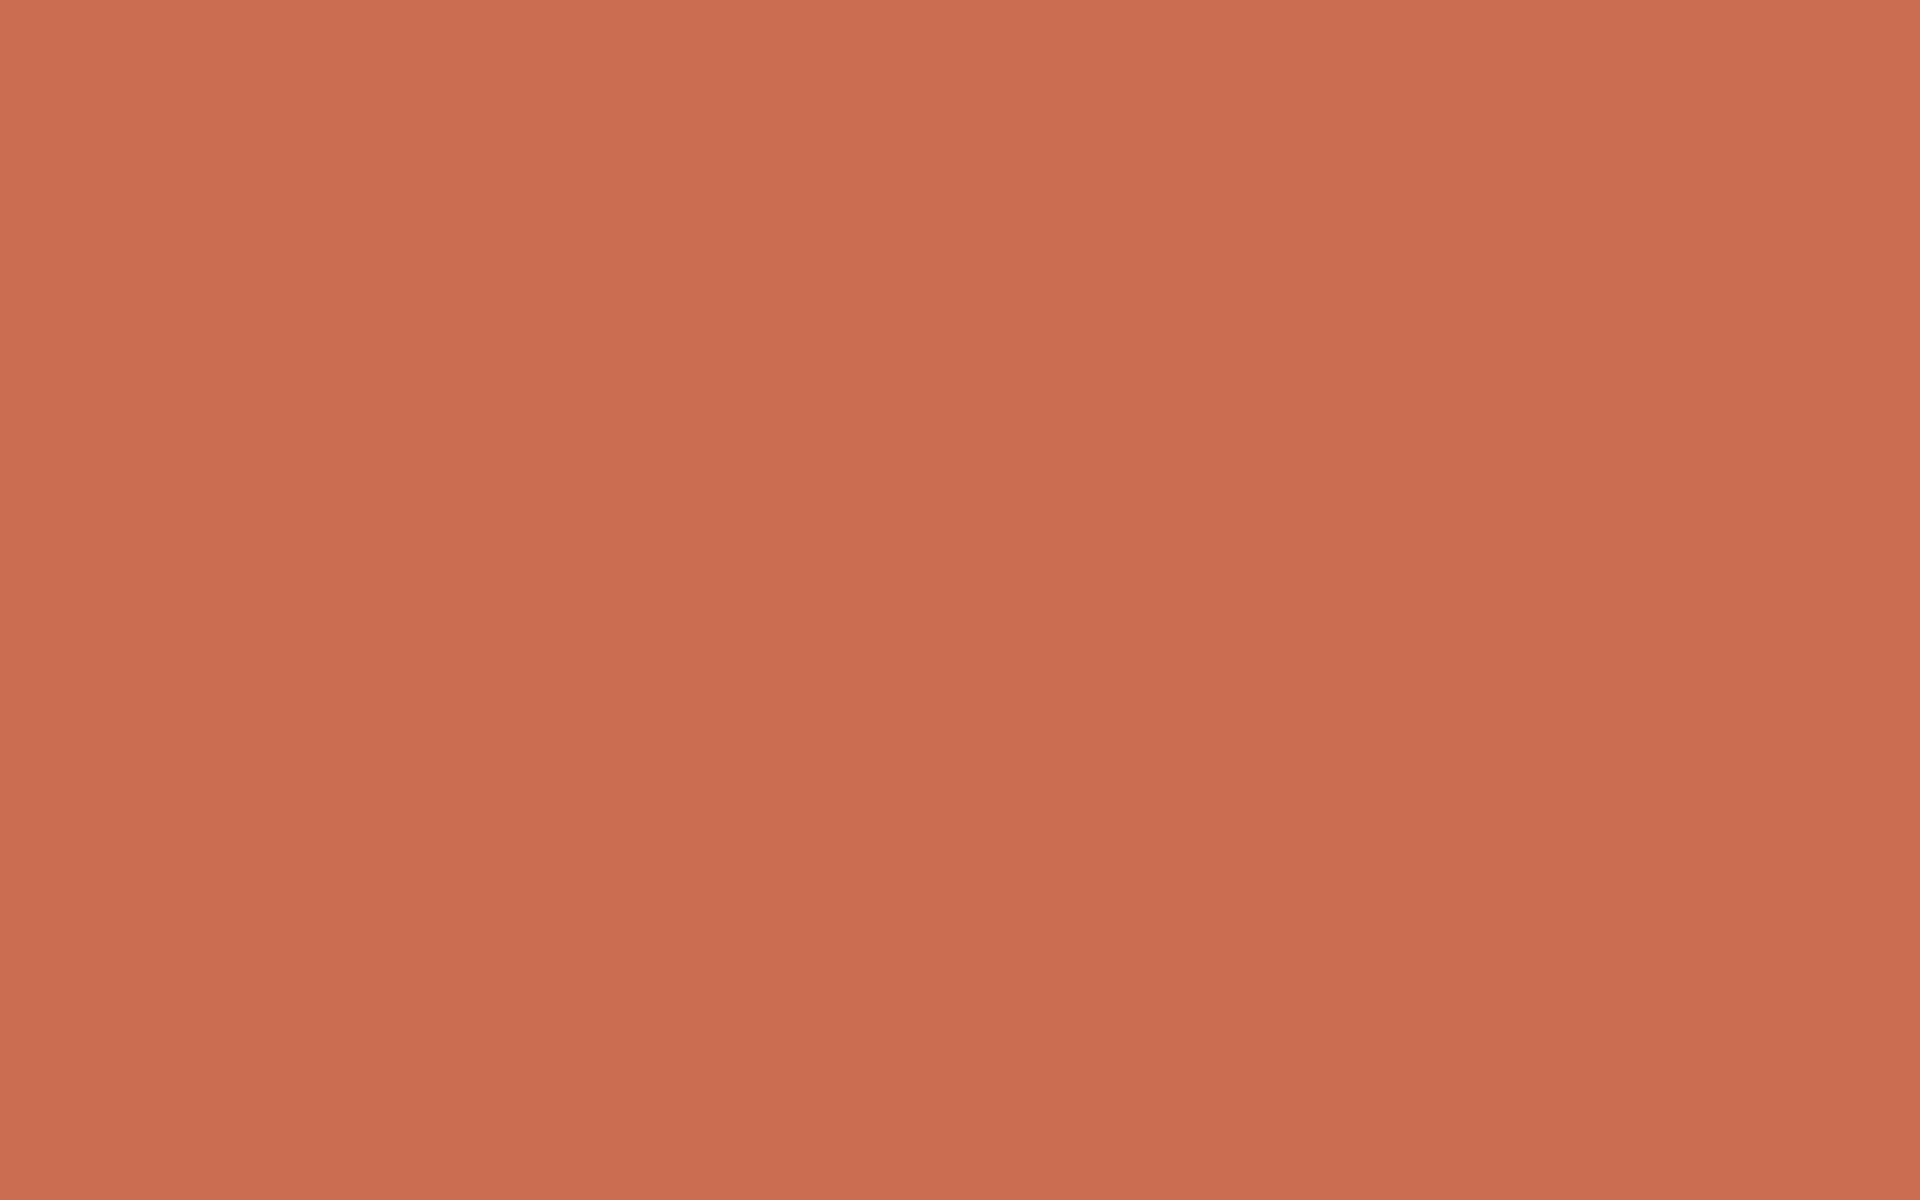 1920x1200 Copper Red Solid Color Background